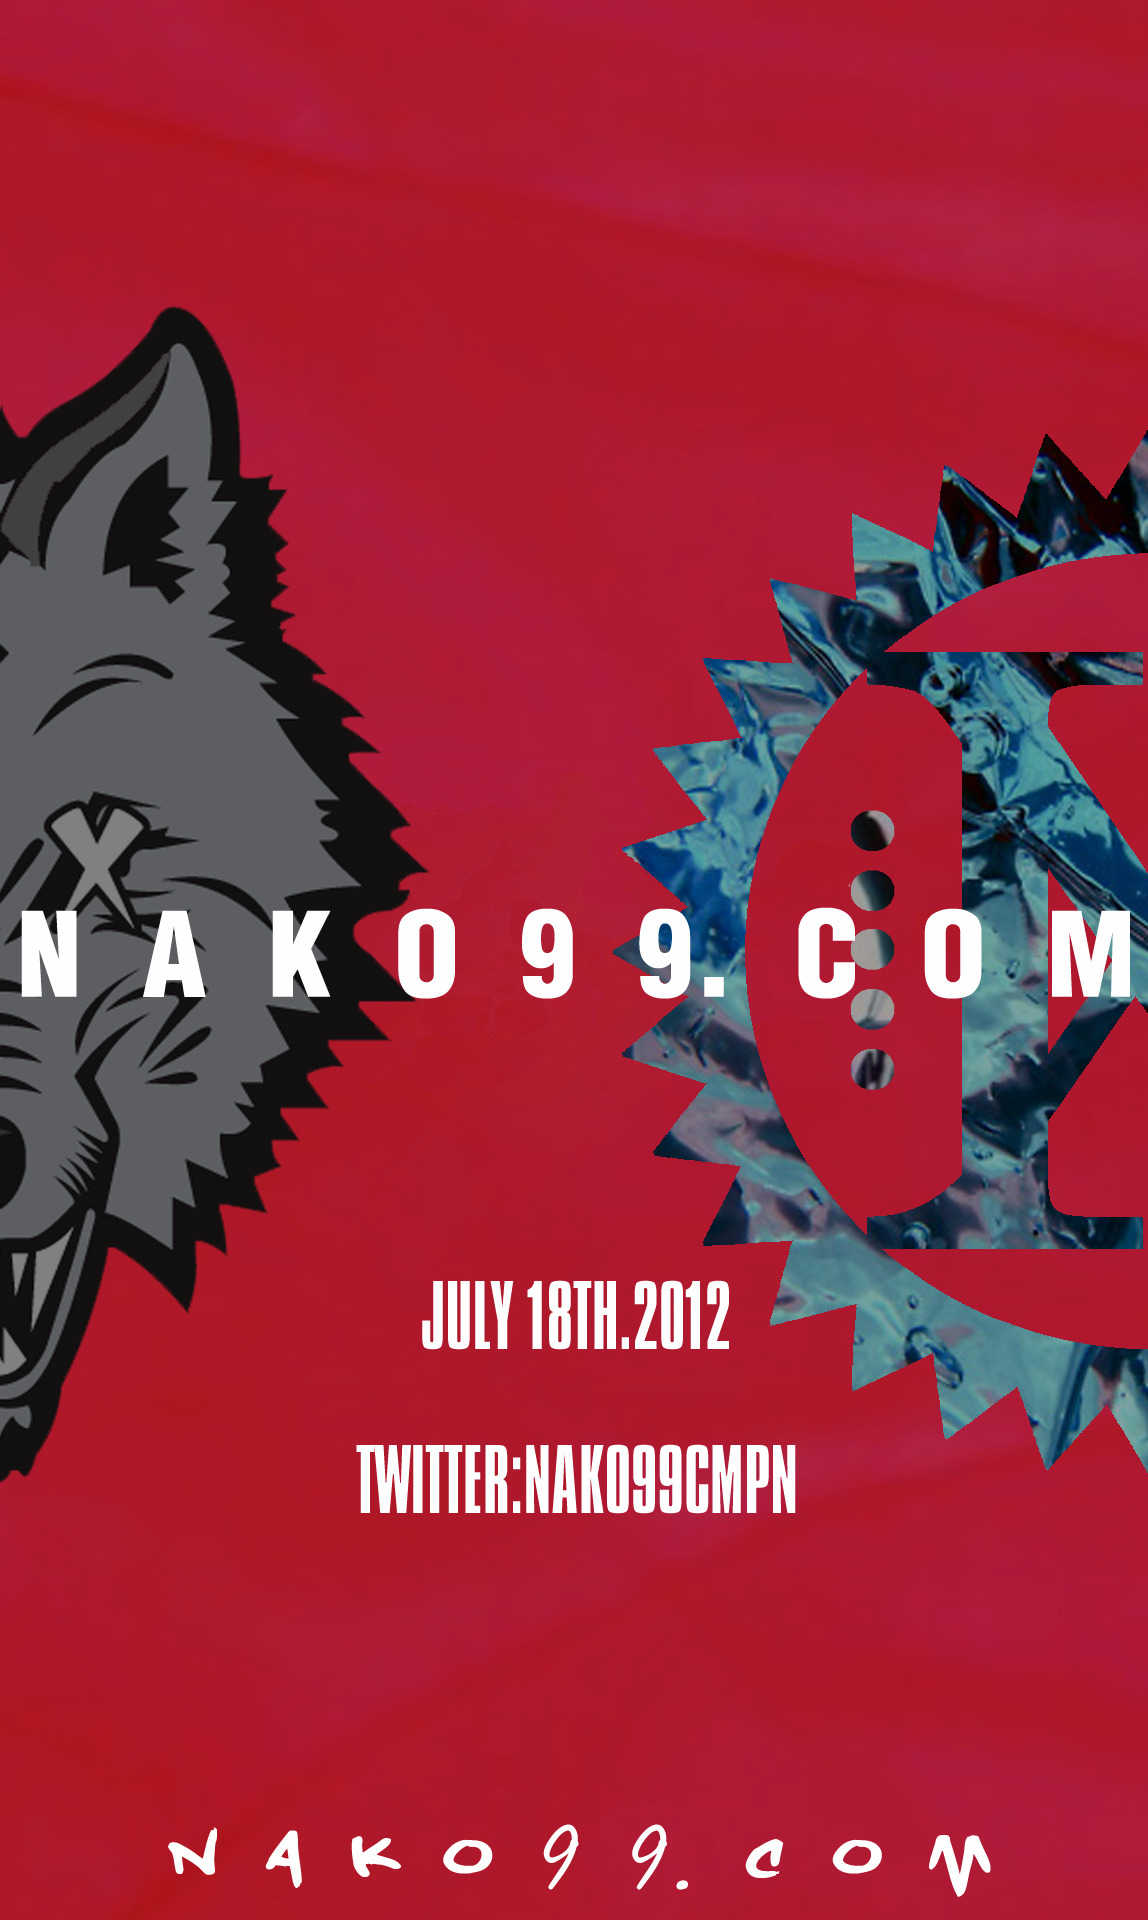 NAKO99.COM SHOP OPENS JULY 18TH. FOLLOW THE SHOP ON TWITTER:NAKO99CMPN